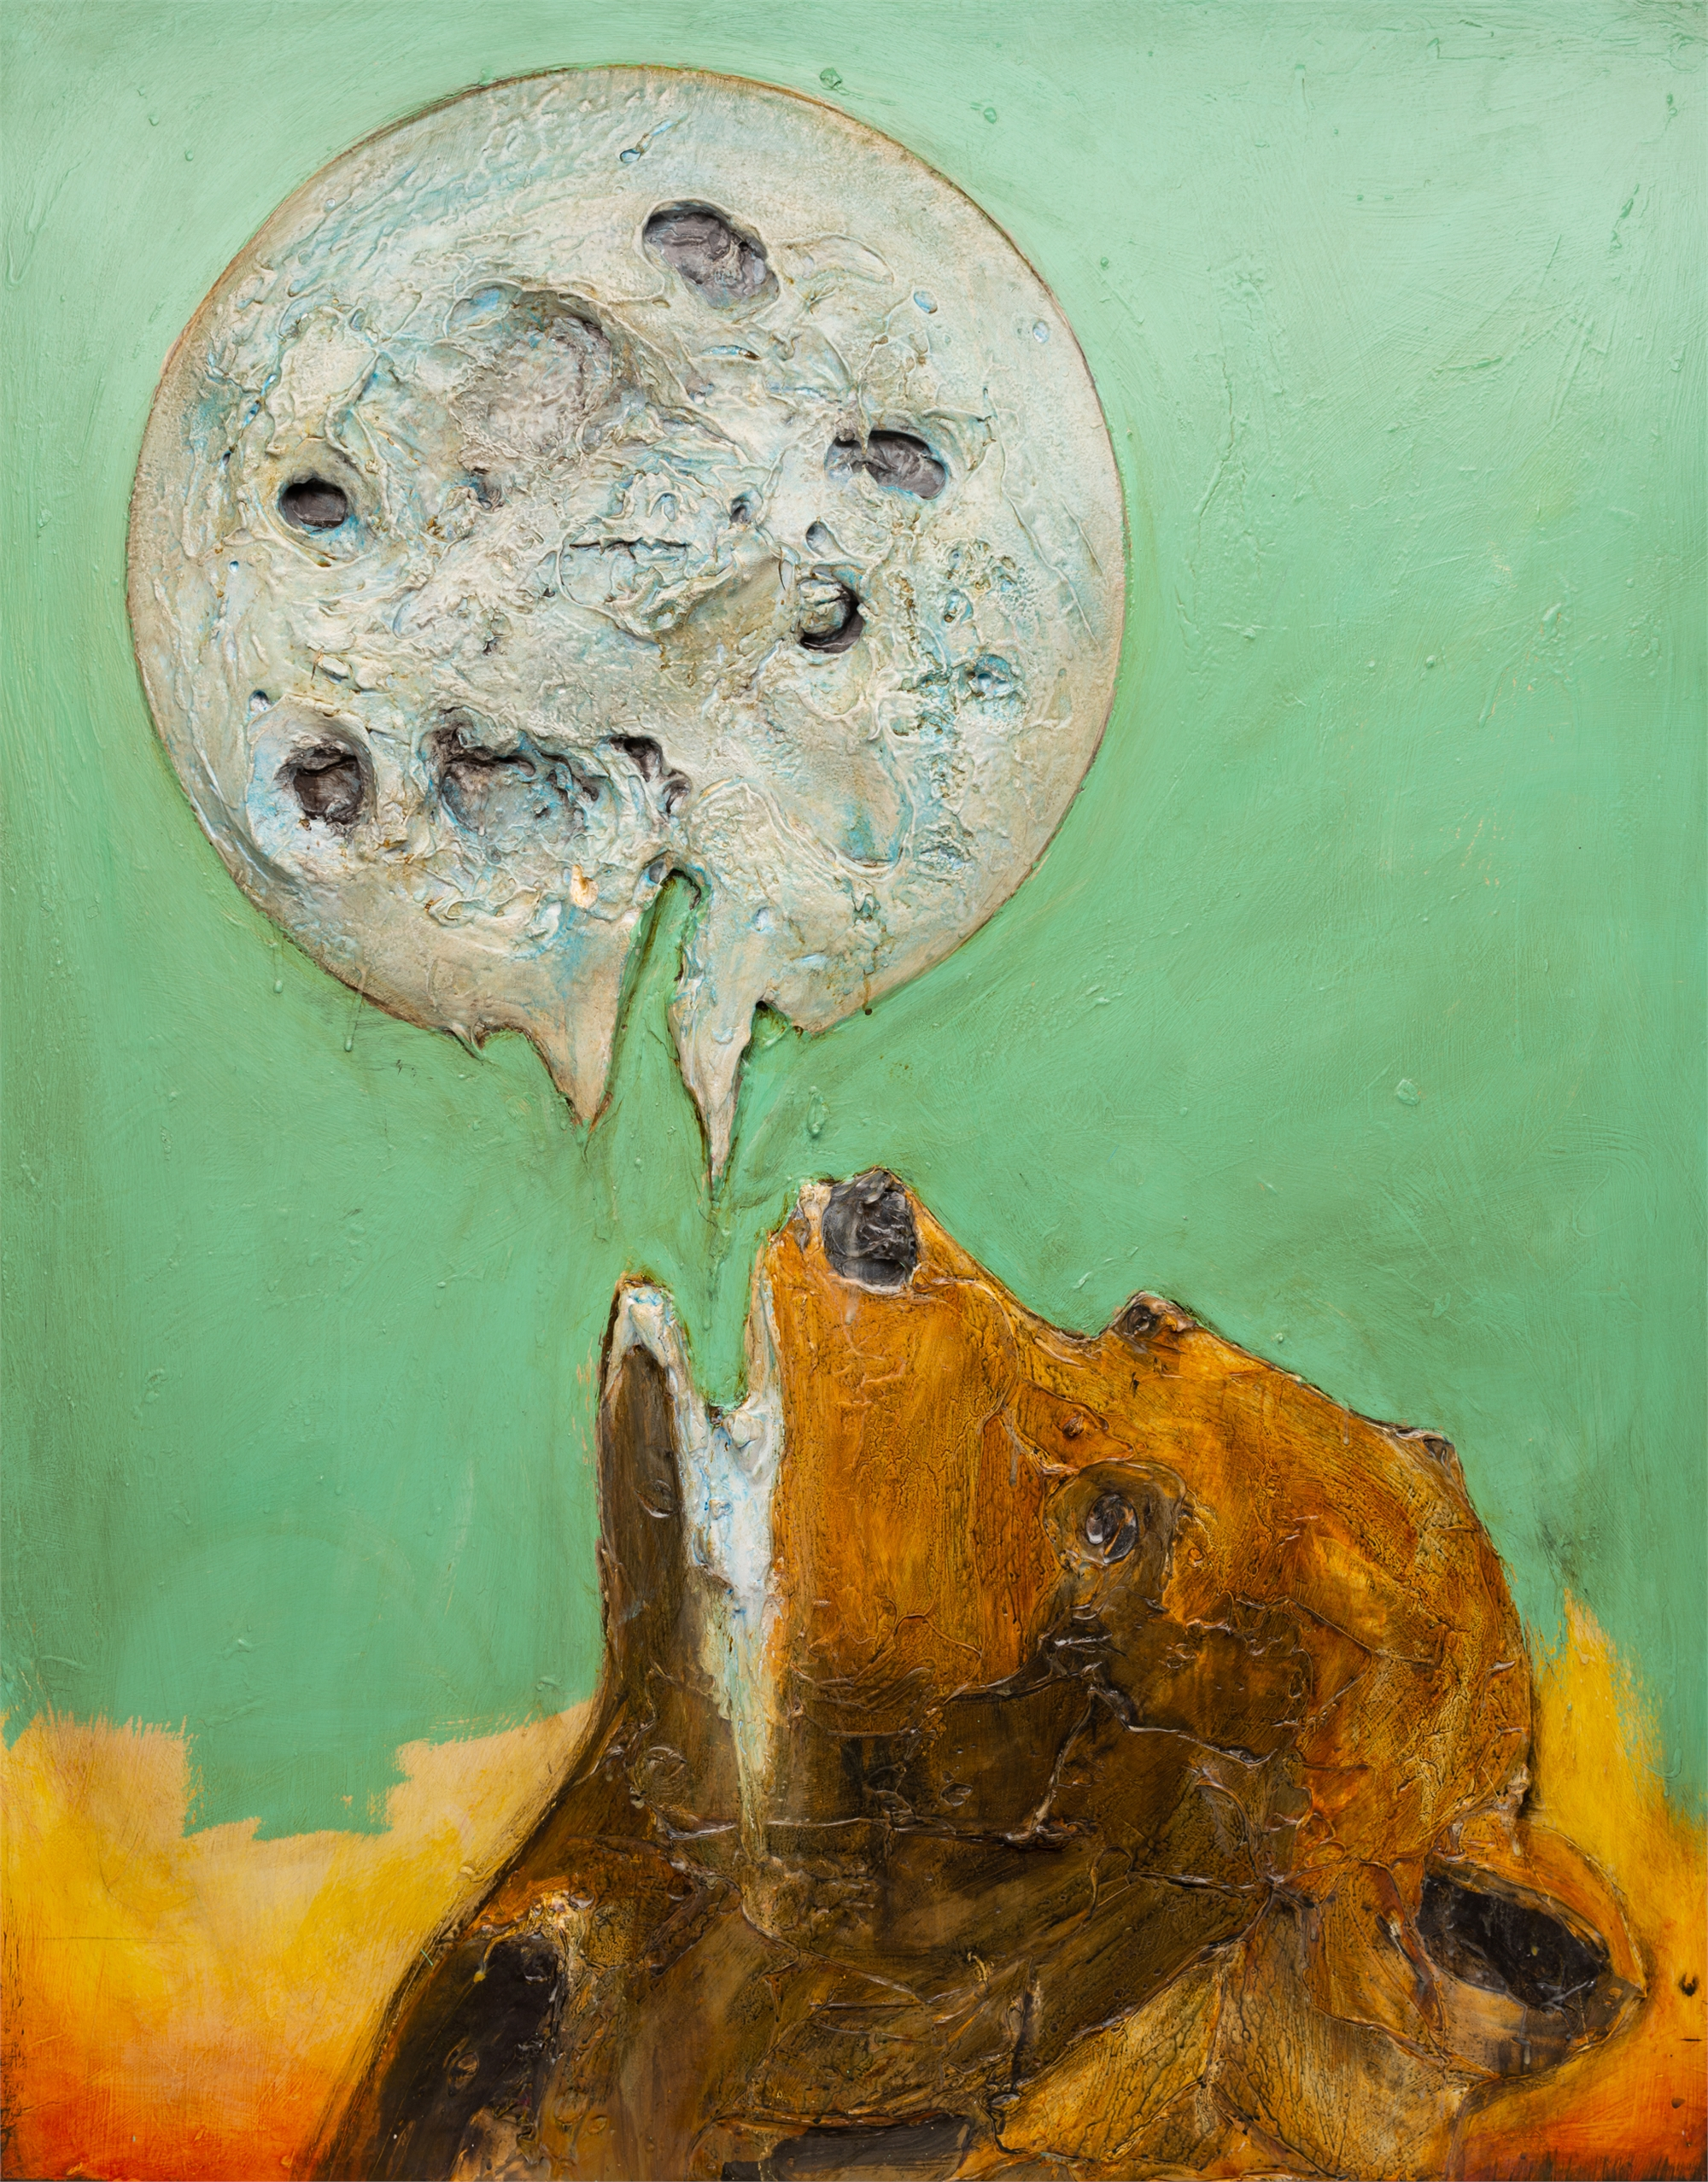 BEAR AND MOON MS-40X50-2019-316 by JUSTIN GAFFREY